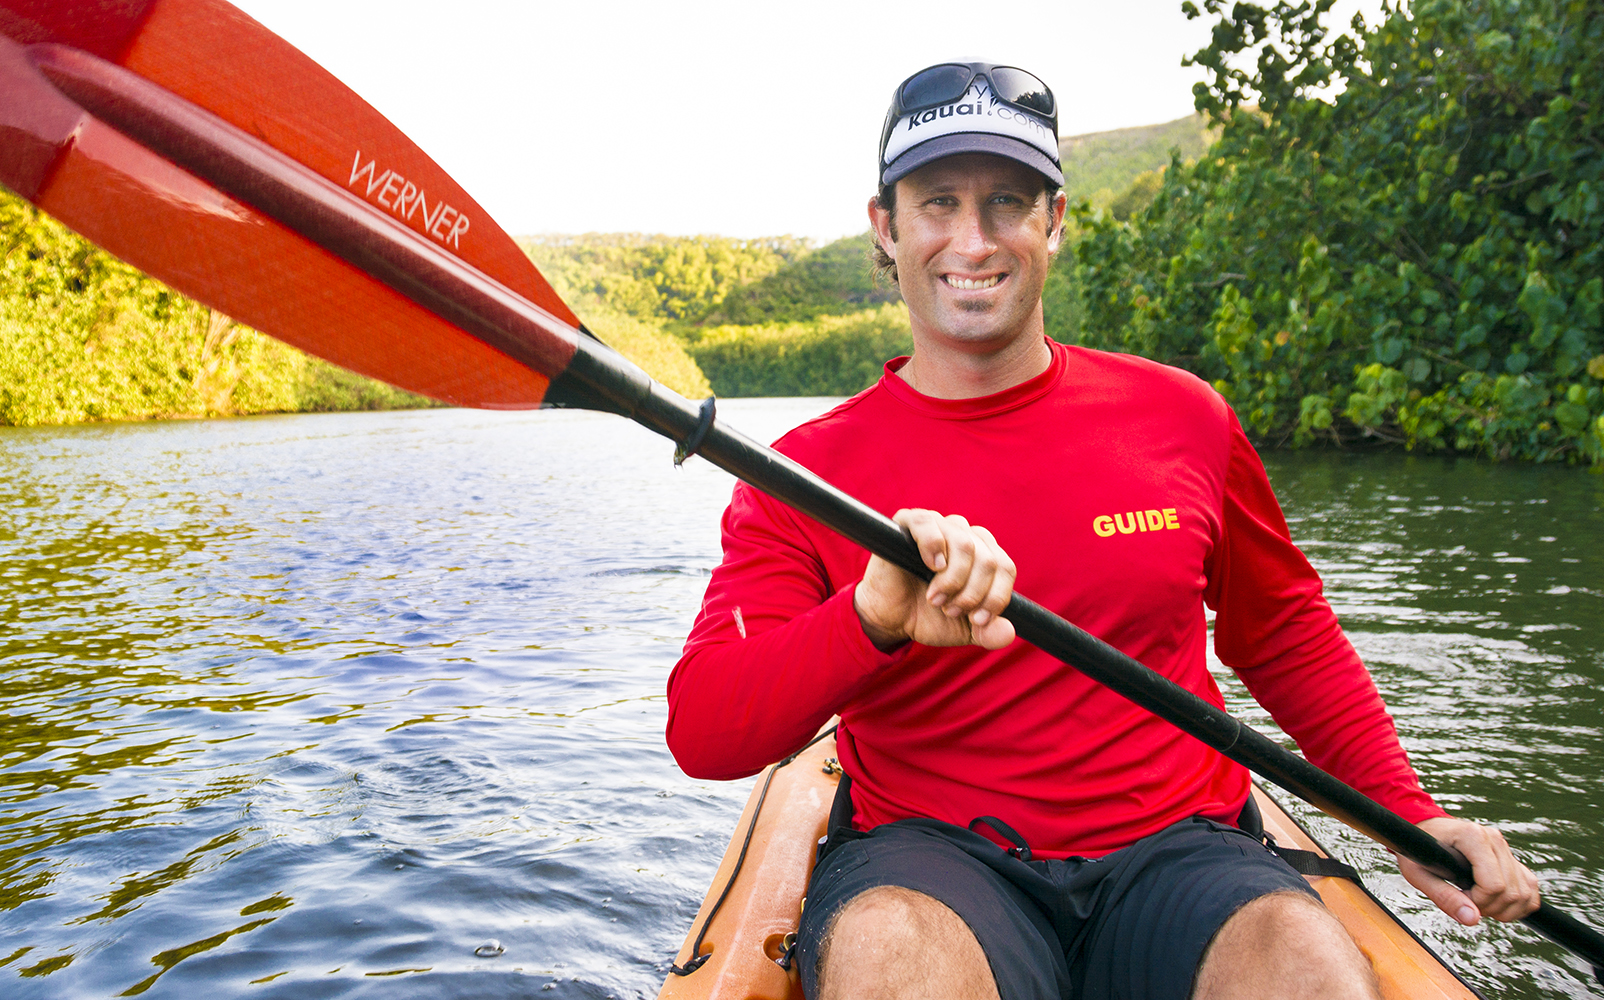 Aaron Martin of activitykauai.com